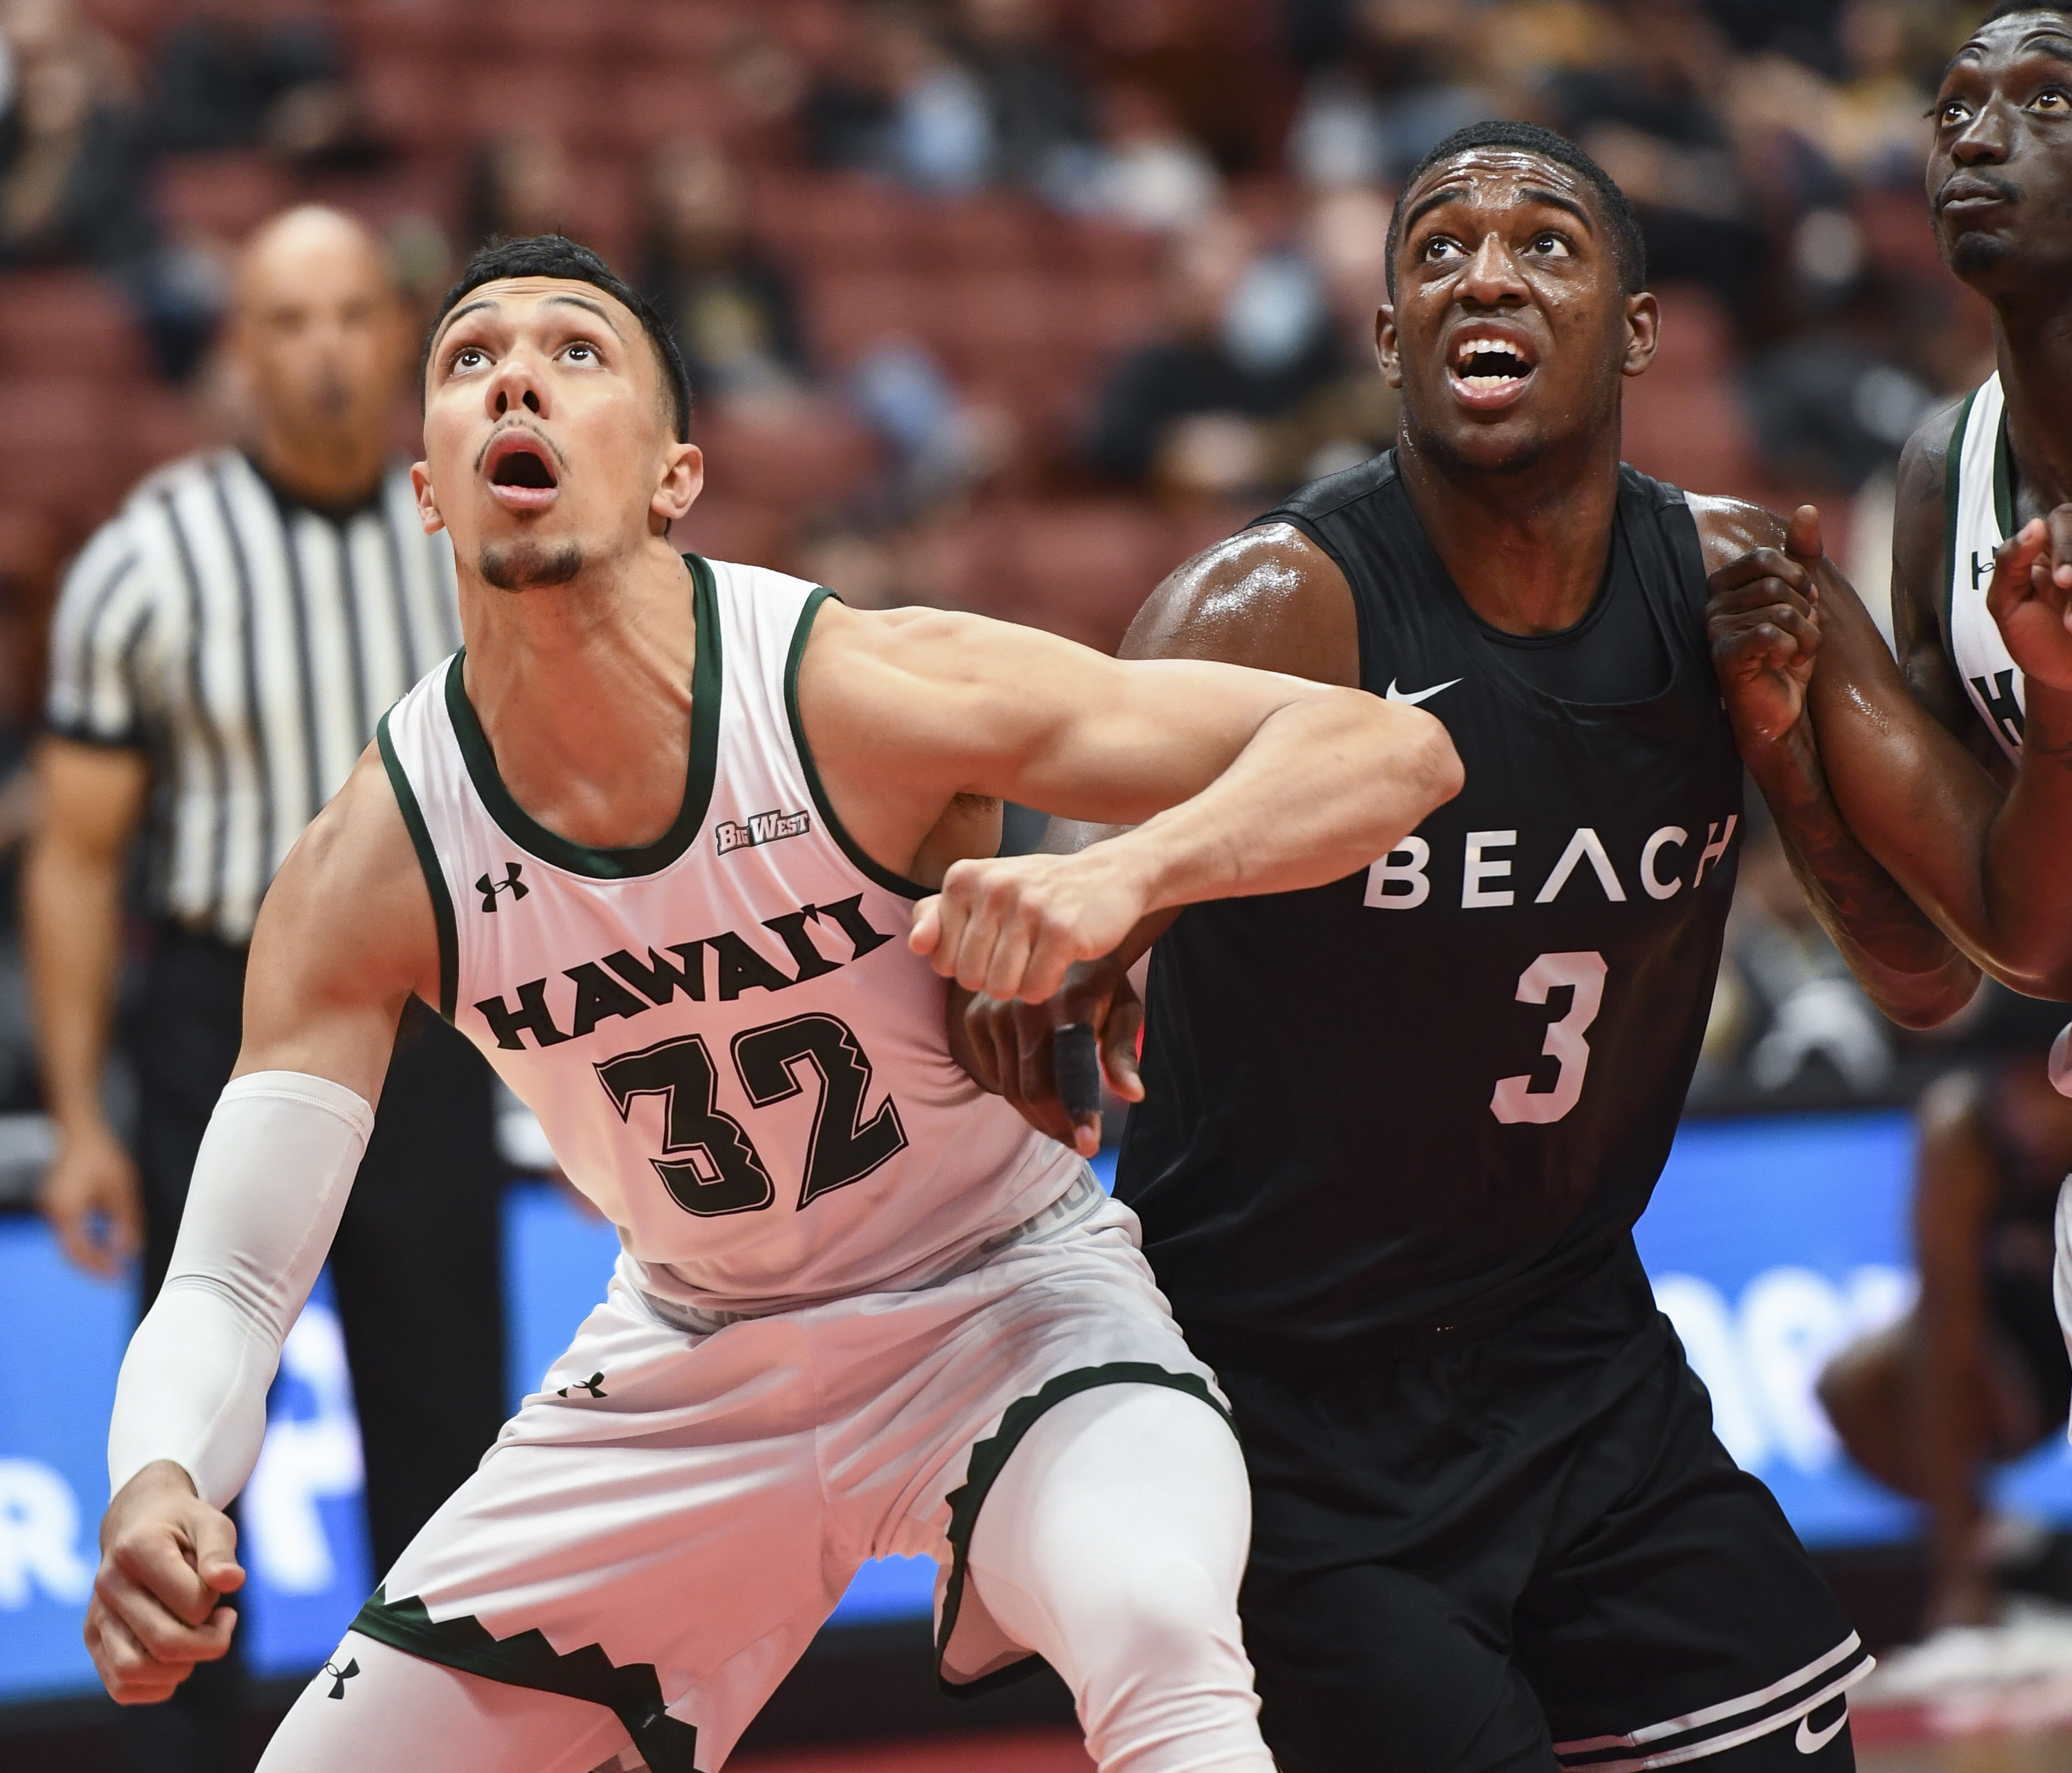 Big West College Basketball Attendance and Ticket Sales Data From 2018-19